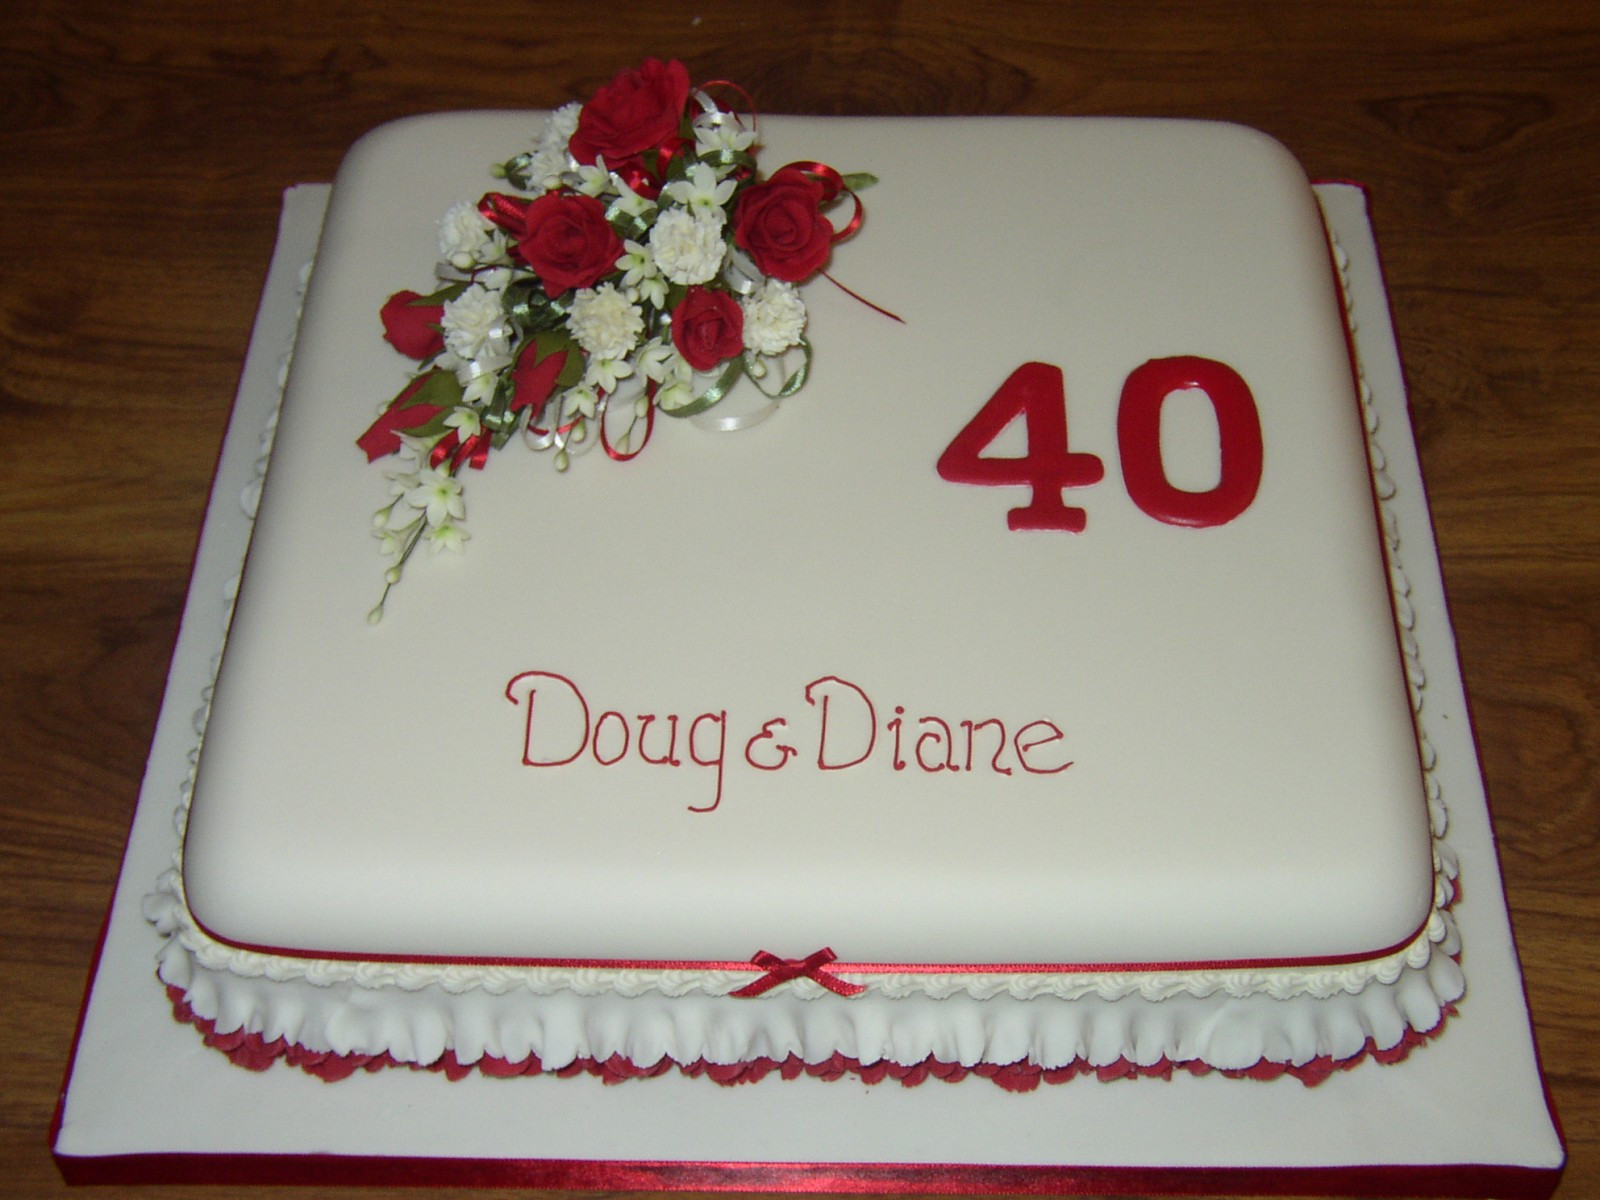 40Th Wedding Anniversary Cakes  40th Wedding Anniversary Cake With Red Rose Flower Spray